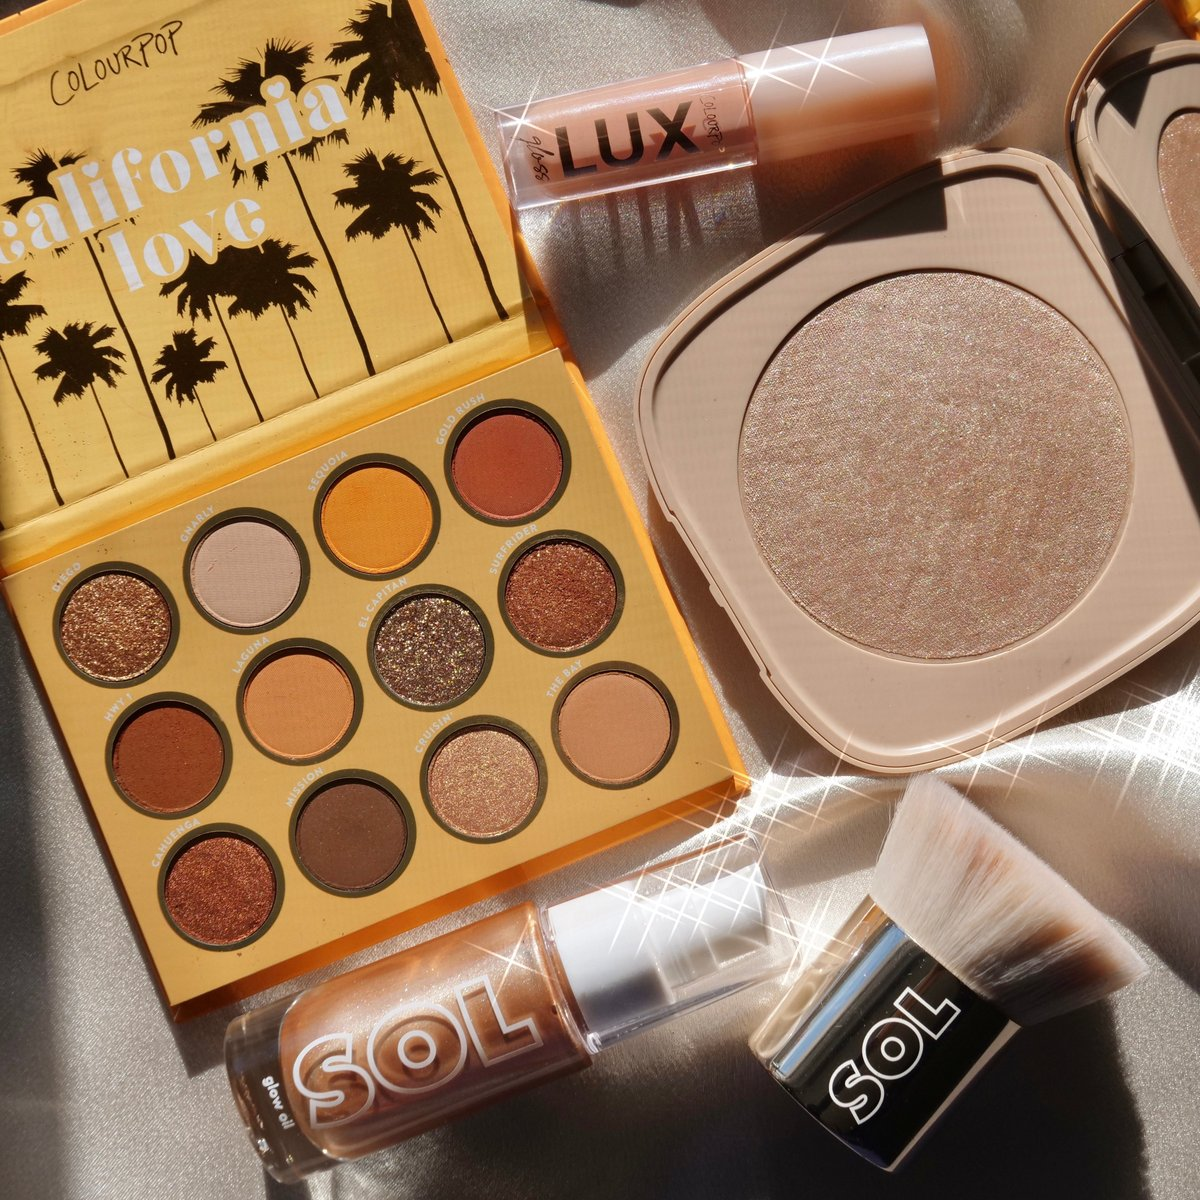 Colourpop Crush is back ☀️ Inspired by the california sun + glowing warm weather!   Check out the @LianeV  Cali Glow collection available now!   📸:makeup2themaxx